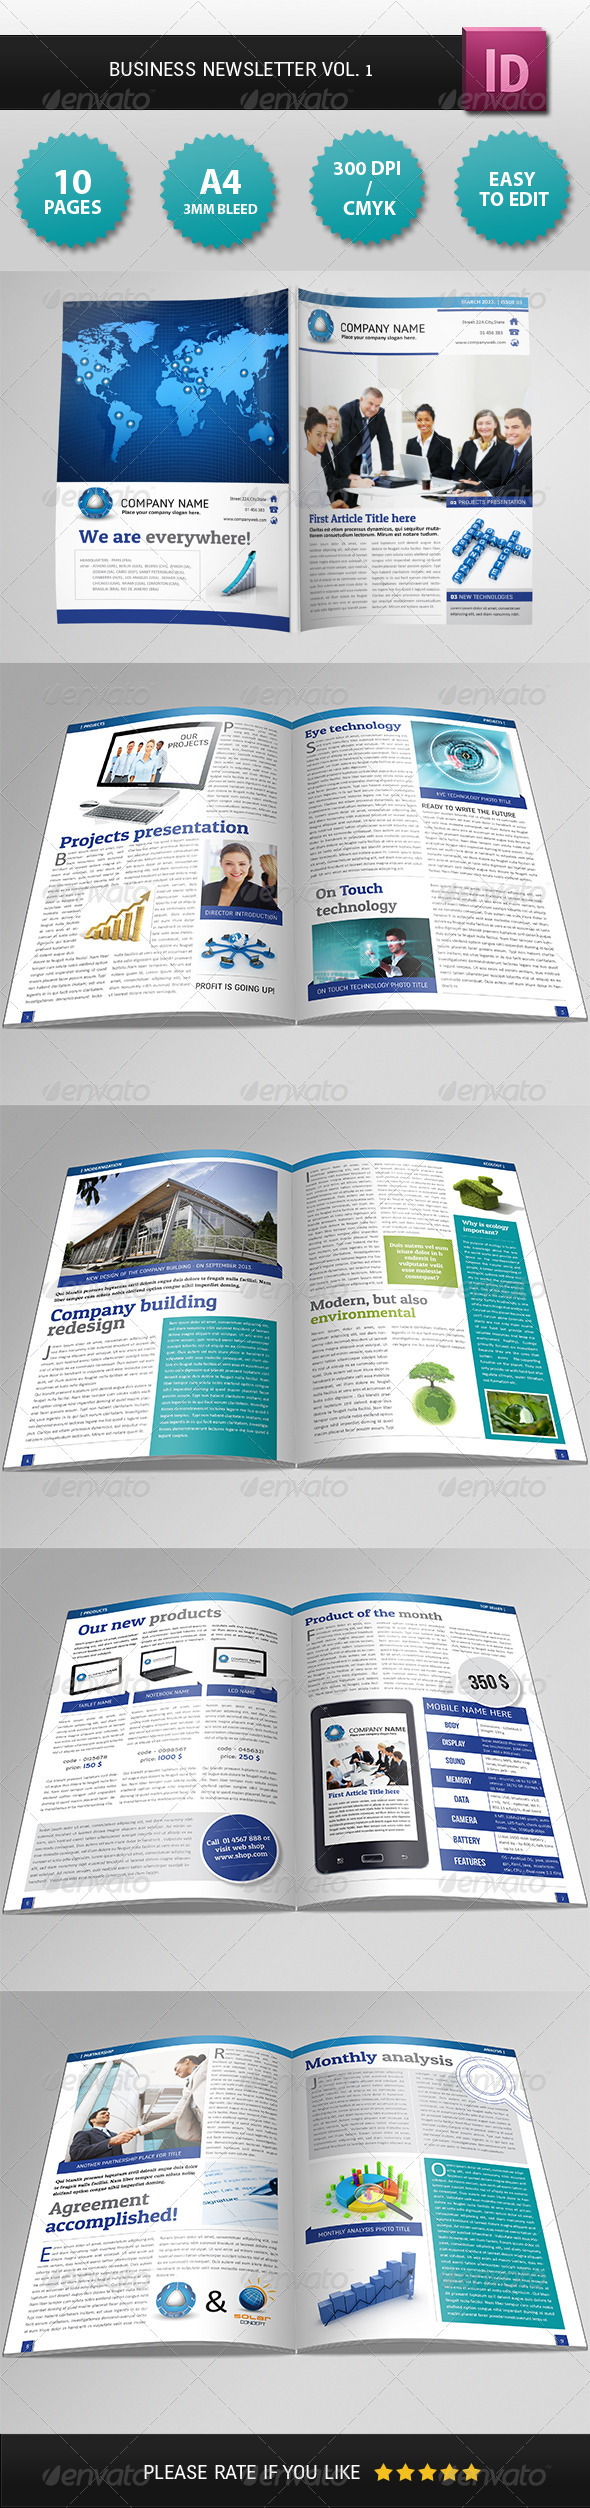 GraphicRiver Business Newsletter Vol 1 4248897